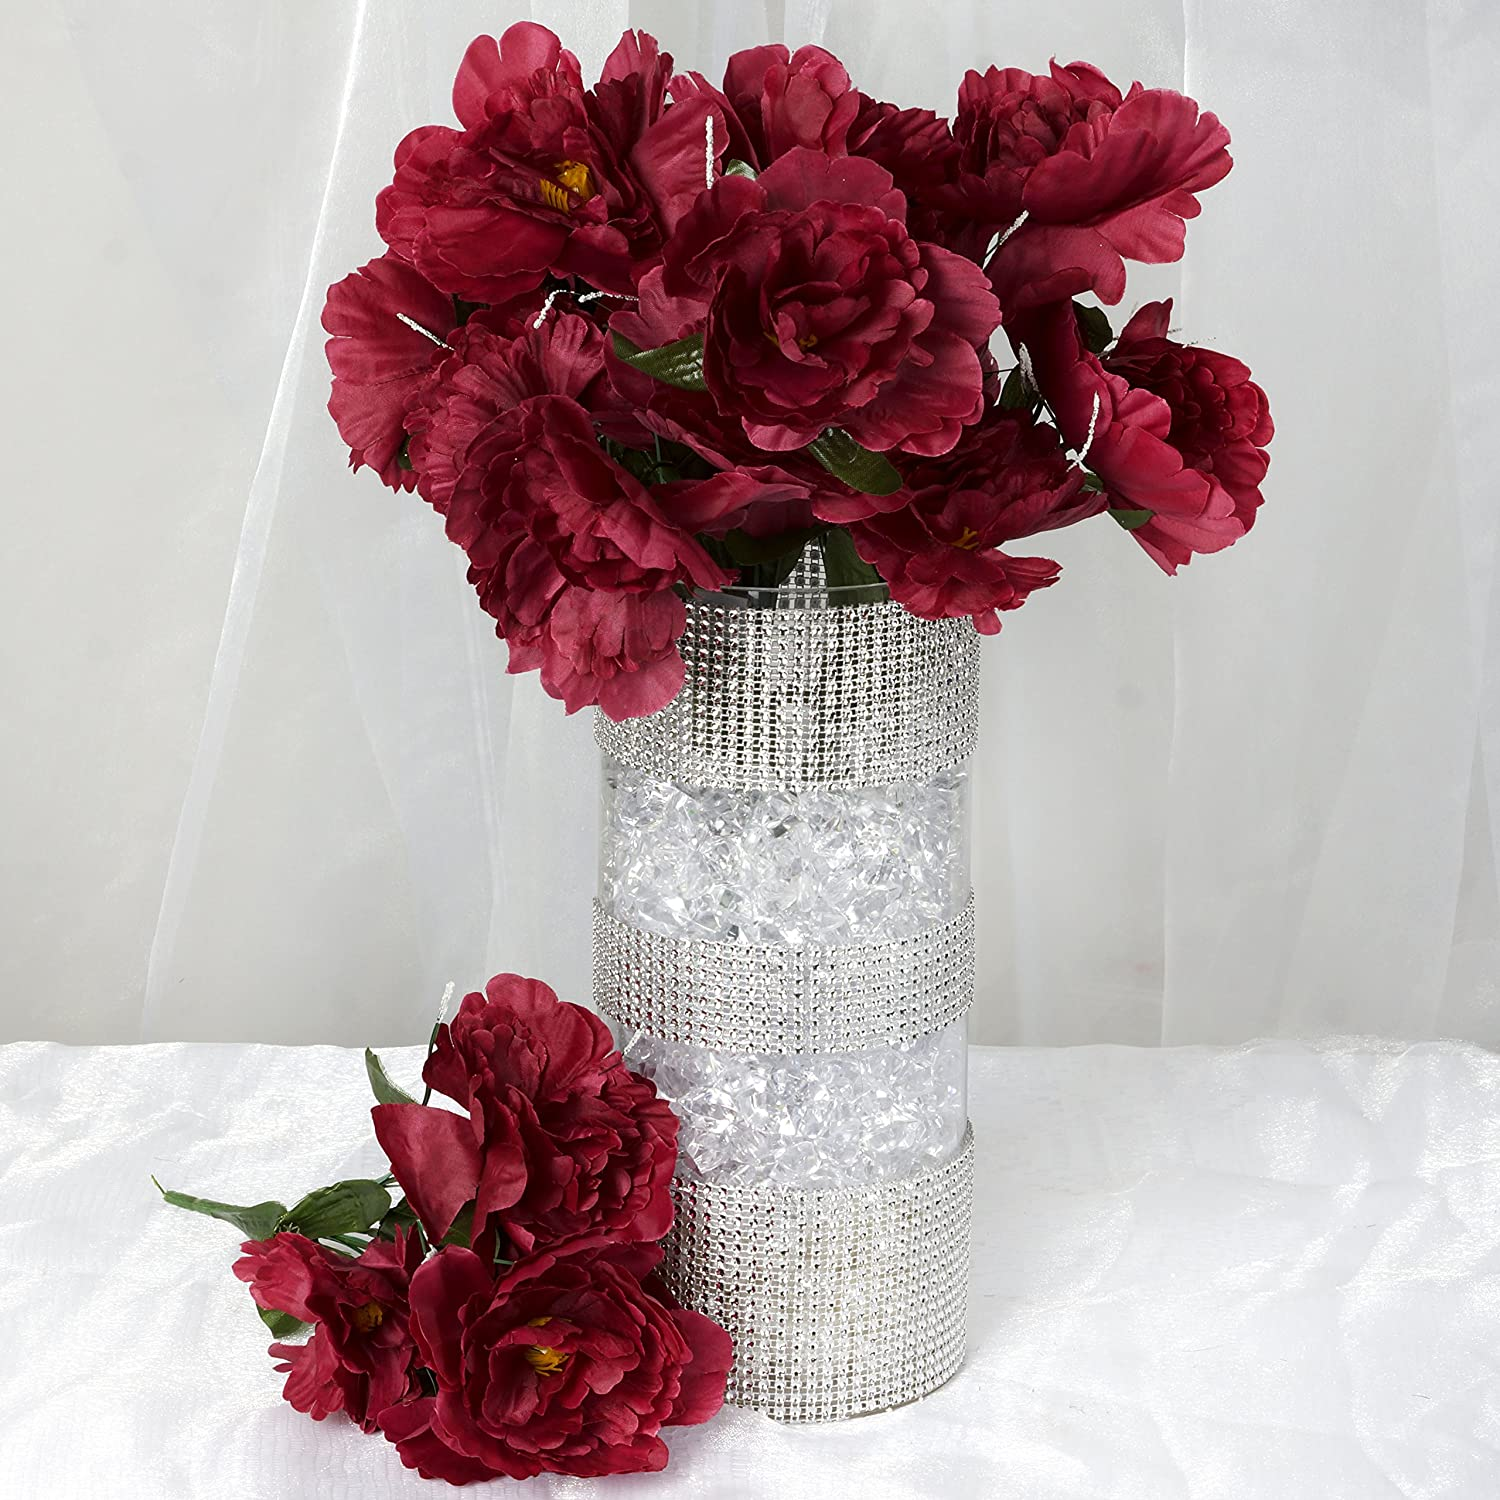 Amazon.com: BalsaCircle 60 Burgundy Silk Peony Flowers - 12 bushes ...